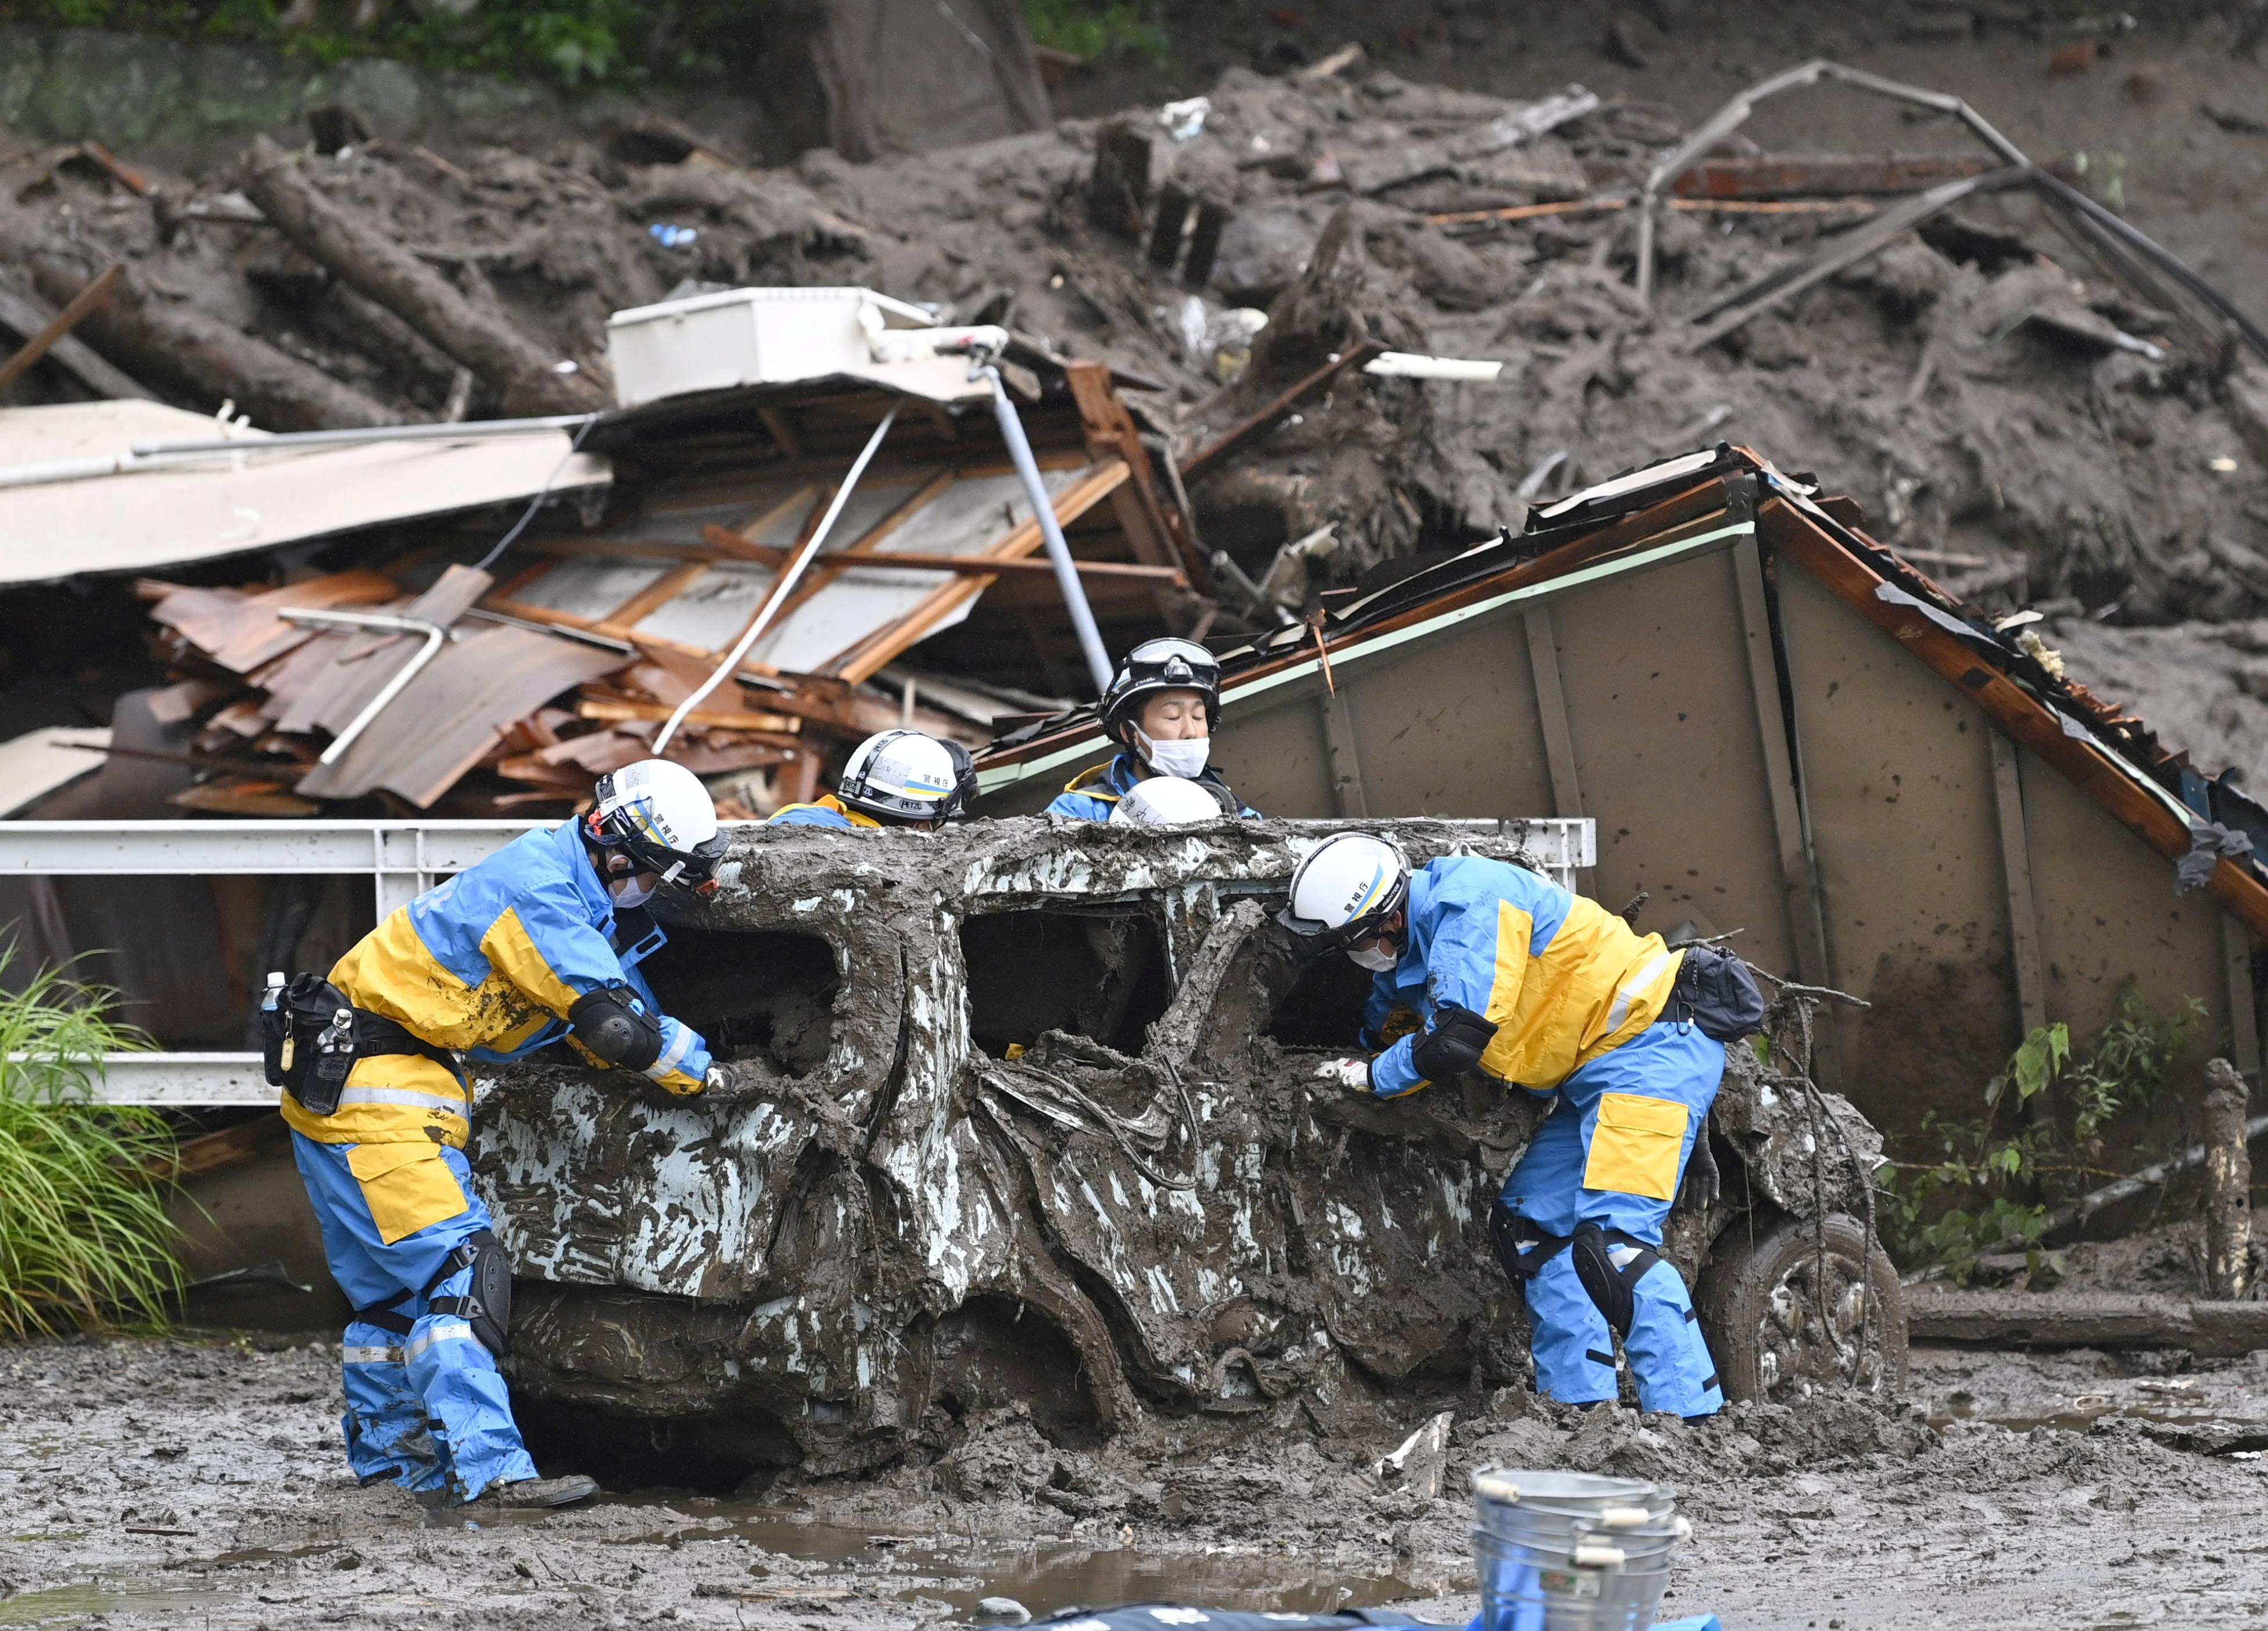 Police officers conduct search and rescue operation around a destroyed car at a mudslide site caused by heavy rain at Izusan district in Atami, west of Tokyo, Japan July 4, 2021, in this photo taken by Kyodo. Kyodo/via REUTERS